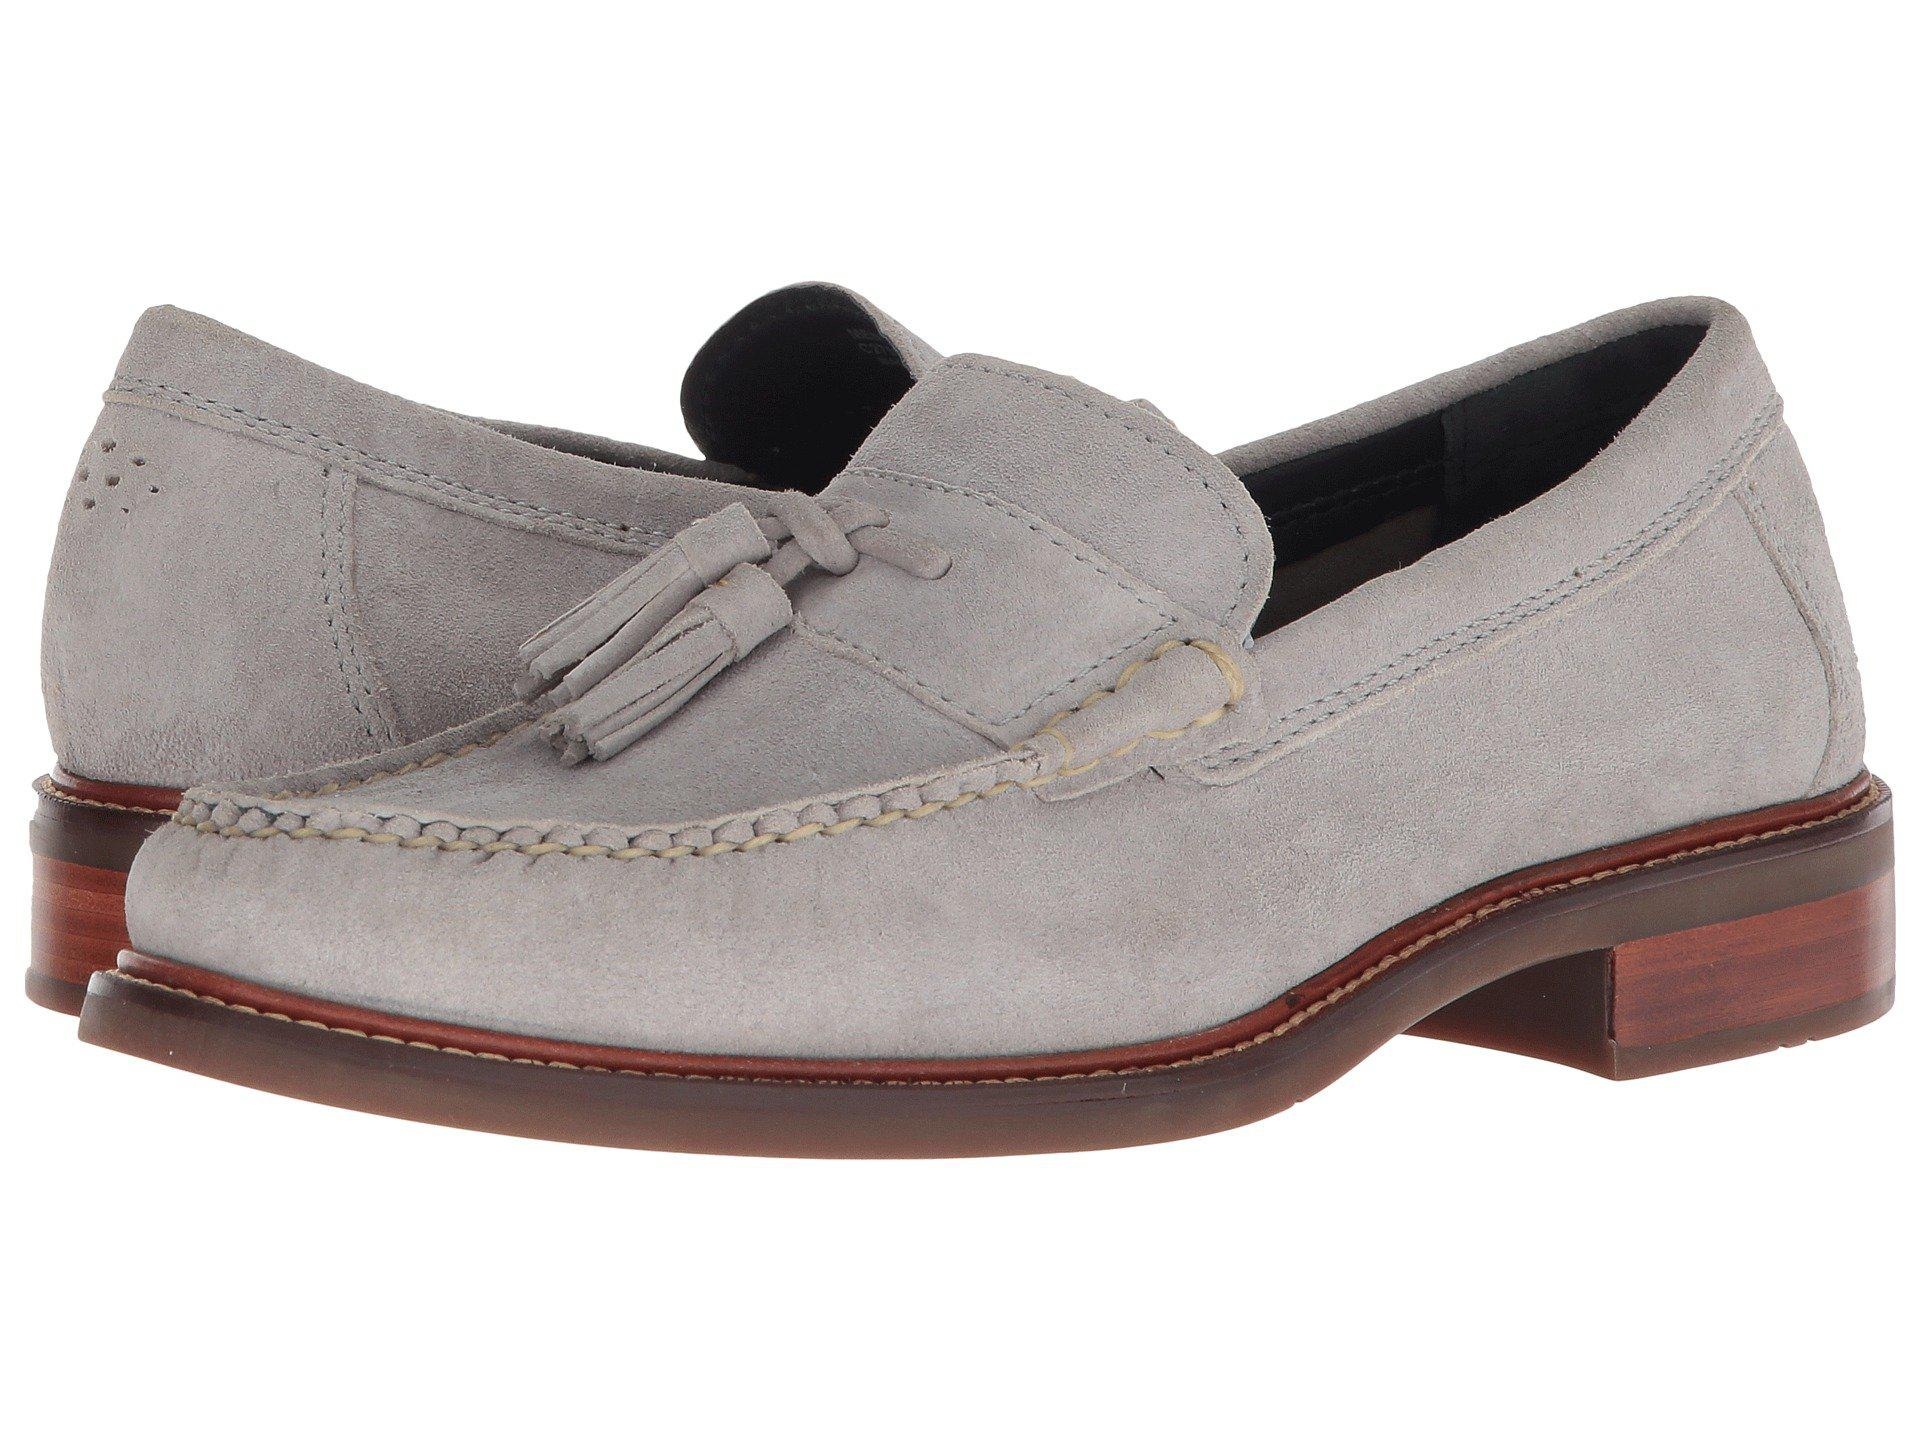 2a2237bfc52 Lyst - Cole Haan Pinch Sanford Tassel Loafer in Gray for Men